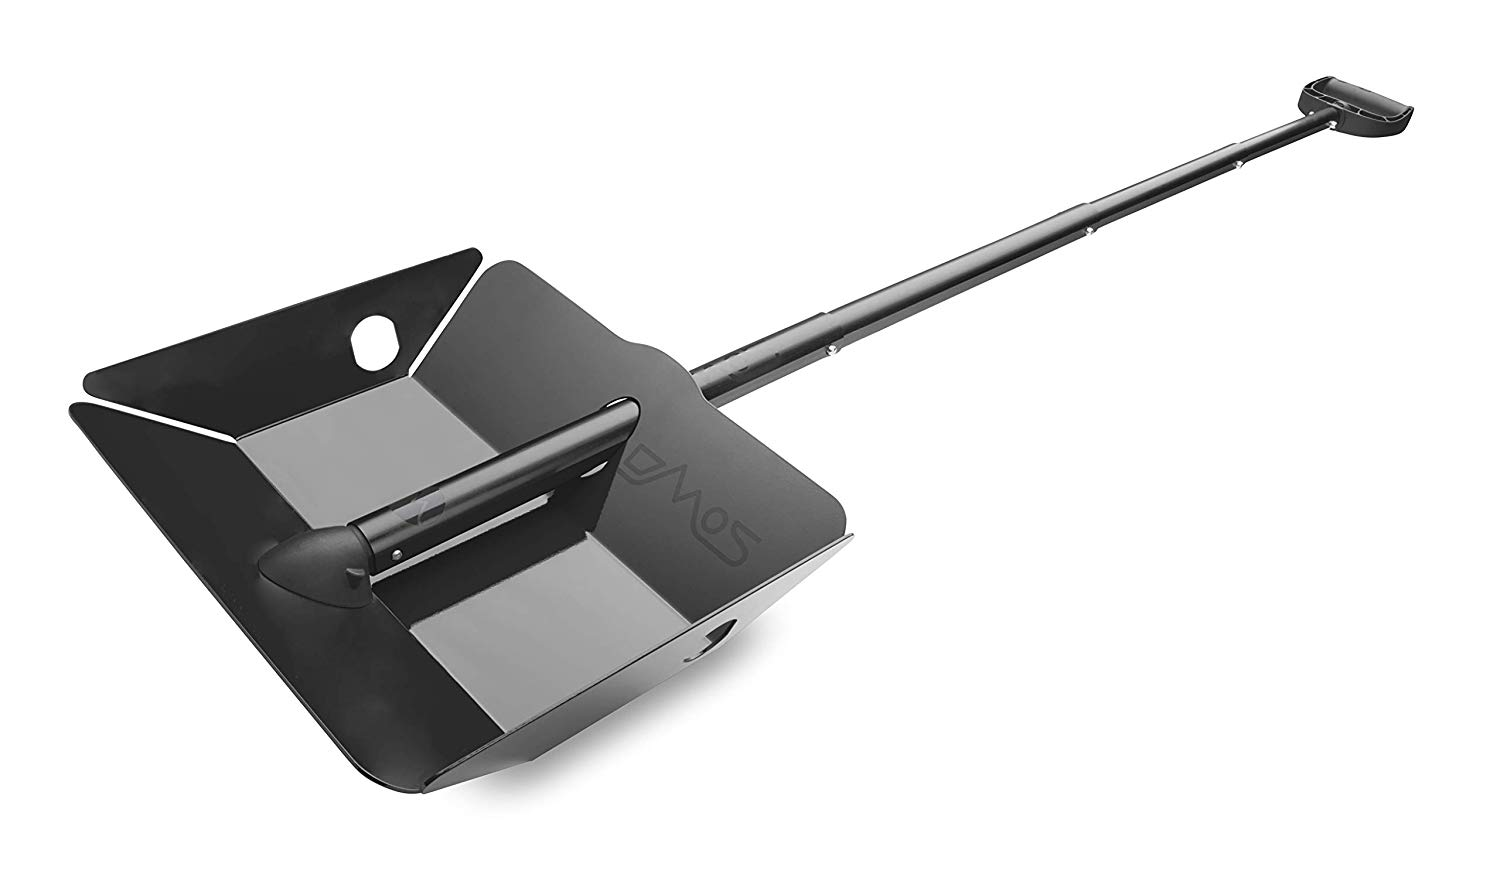 DMOS Alpha 2 Shovel - Strong, Stowable, High-Performance, Perfect for Car Truck, Snow, Survival, Camping, Off-Road, Emergency, and Other Outdoor Activities